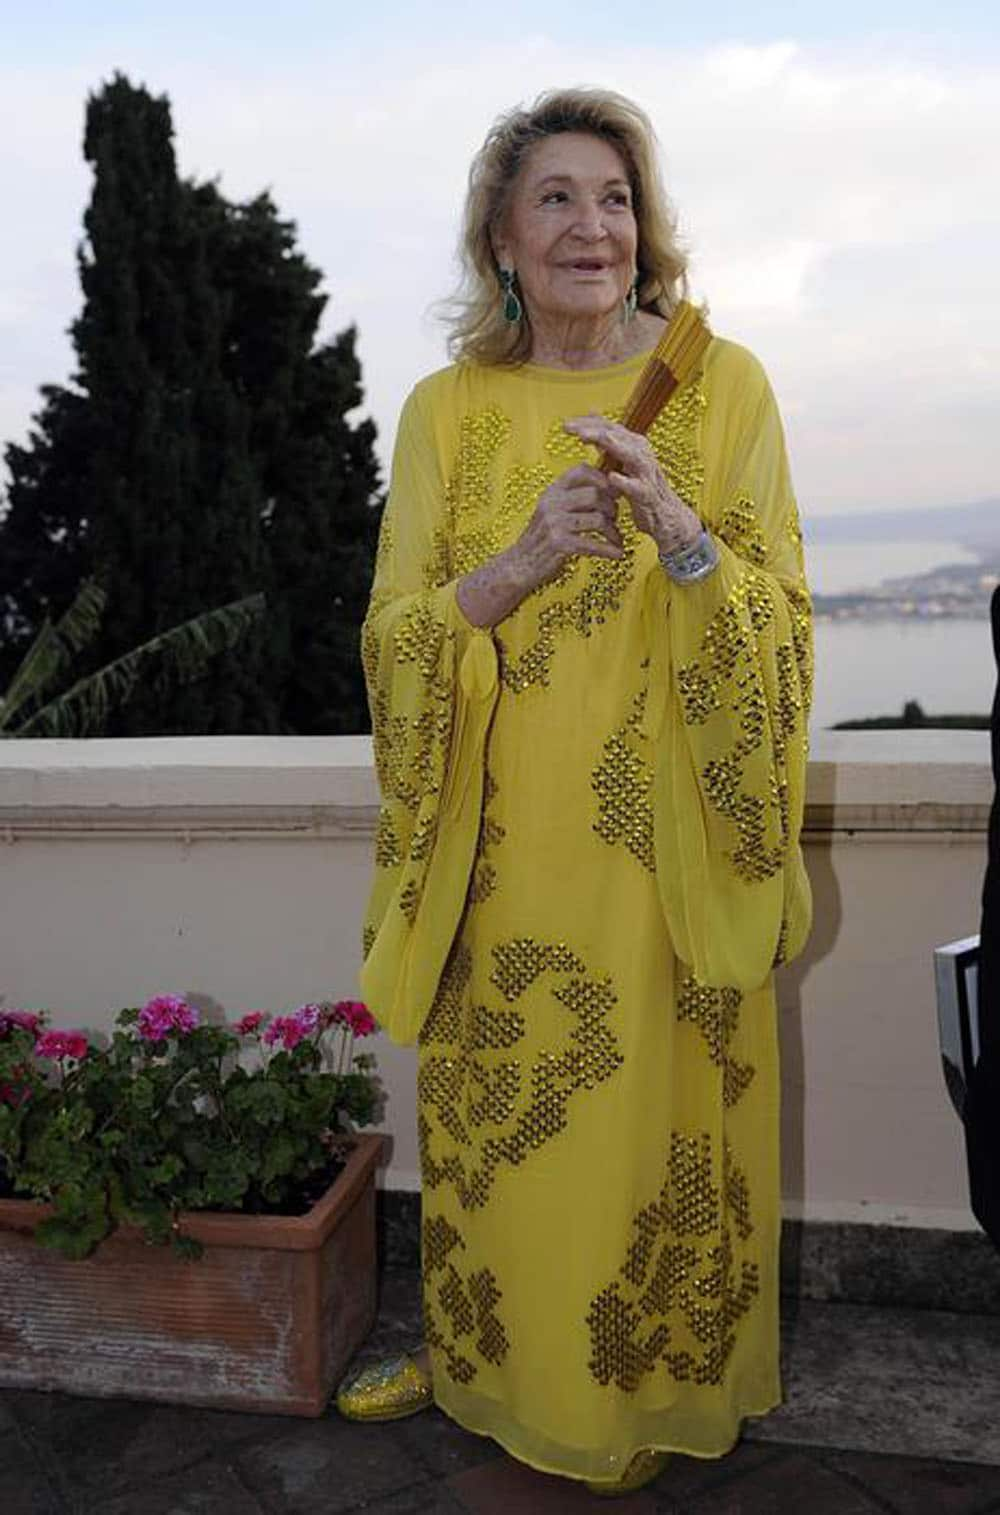 Italian manager Marta Marzotto at a party during the 60thTaormina Film Festival, in Taormina, Sicily Island, Italy, 15 June 2014. The festival runs from 14 to 21 June. ANSA/CLAUDIO ONORATI